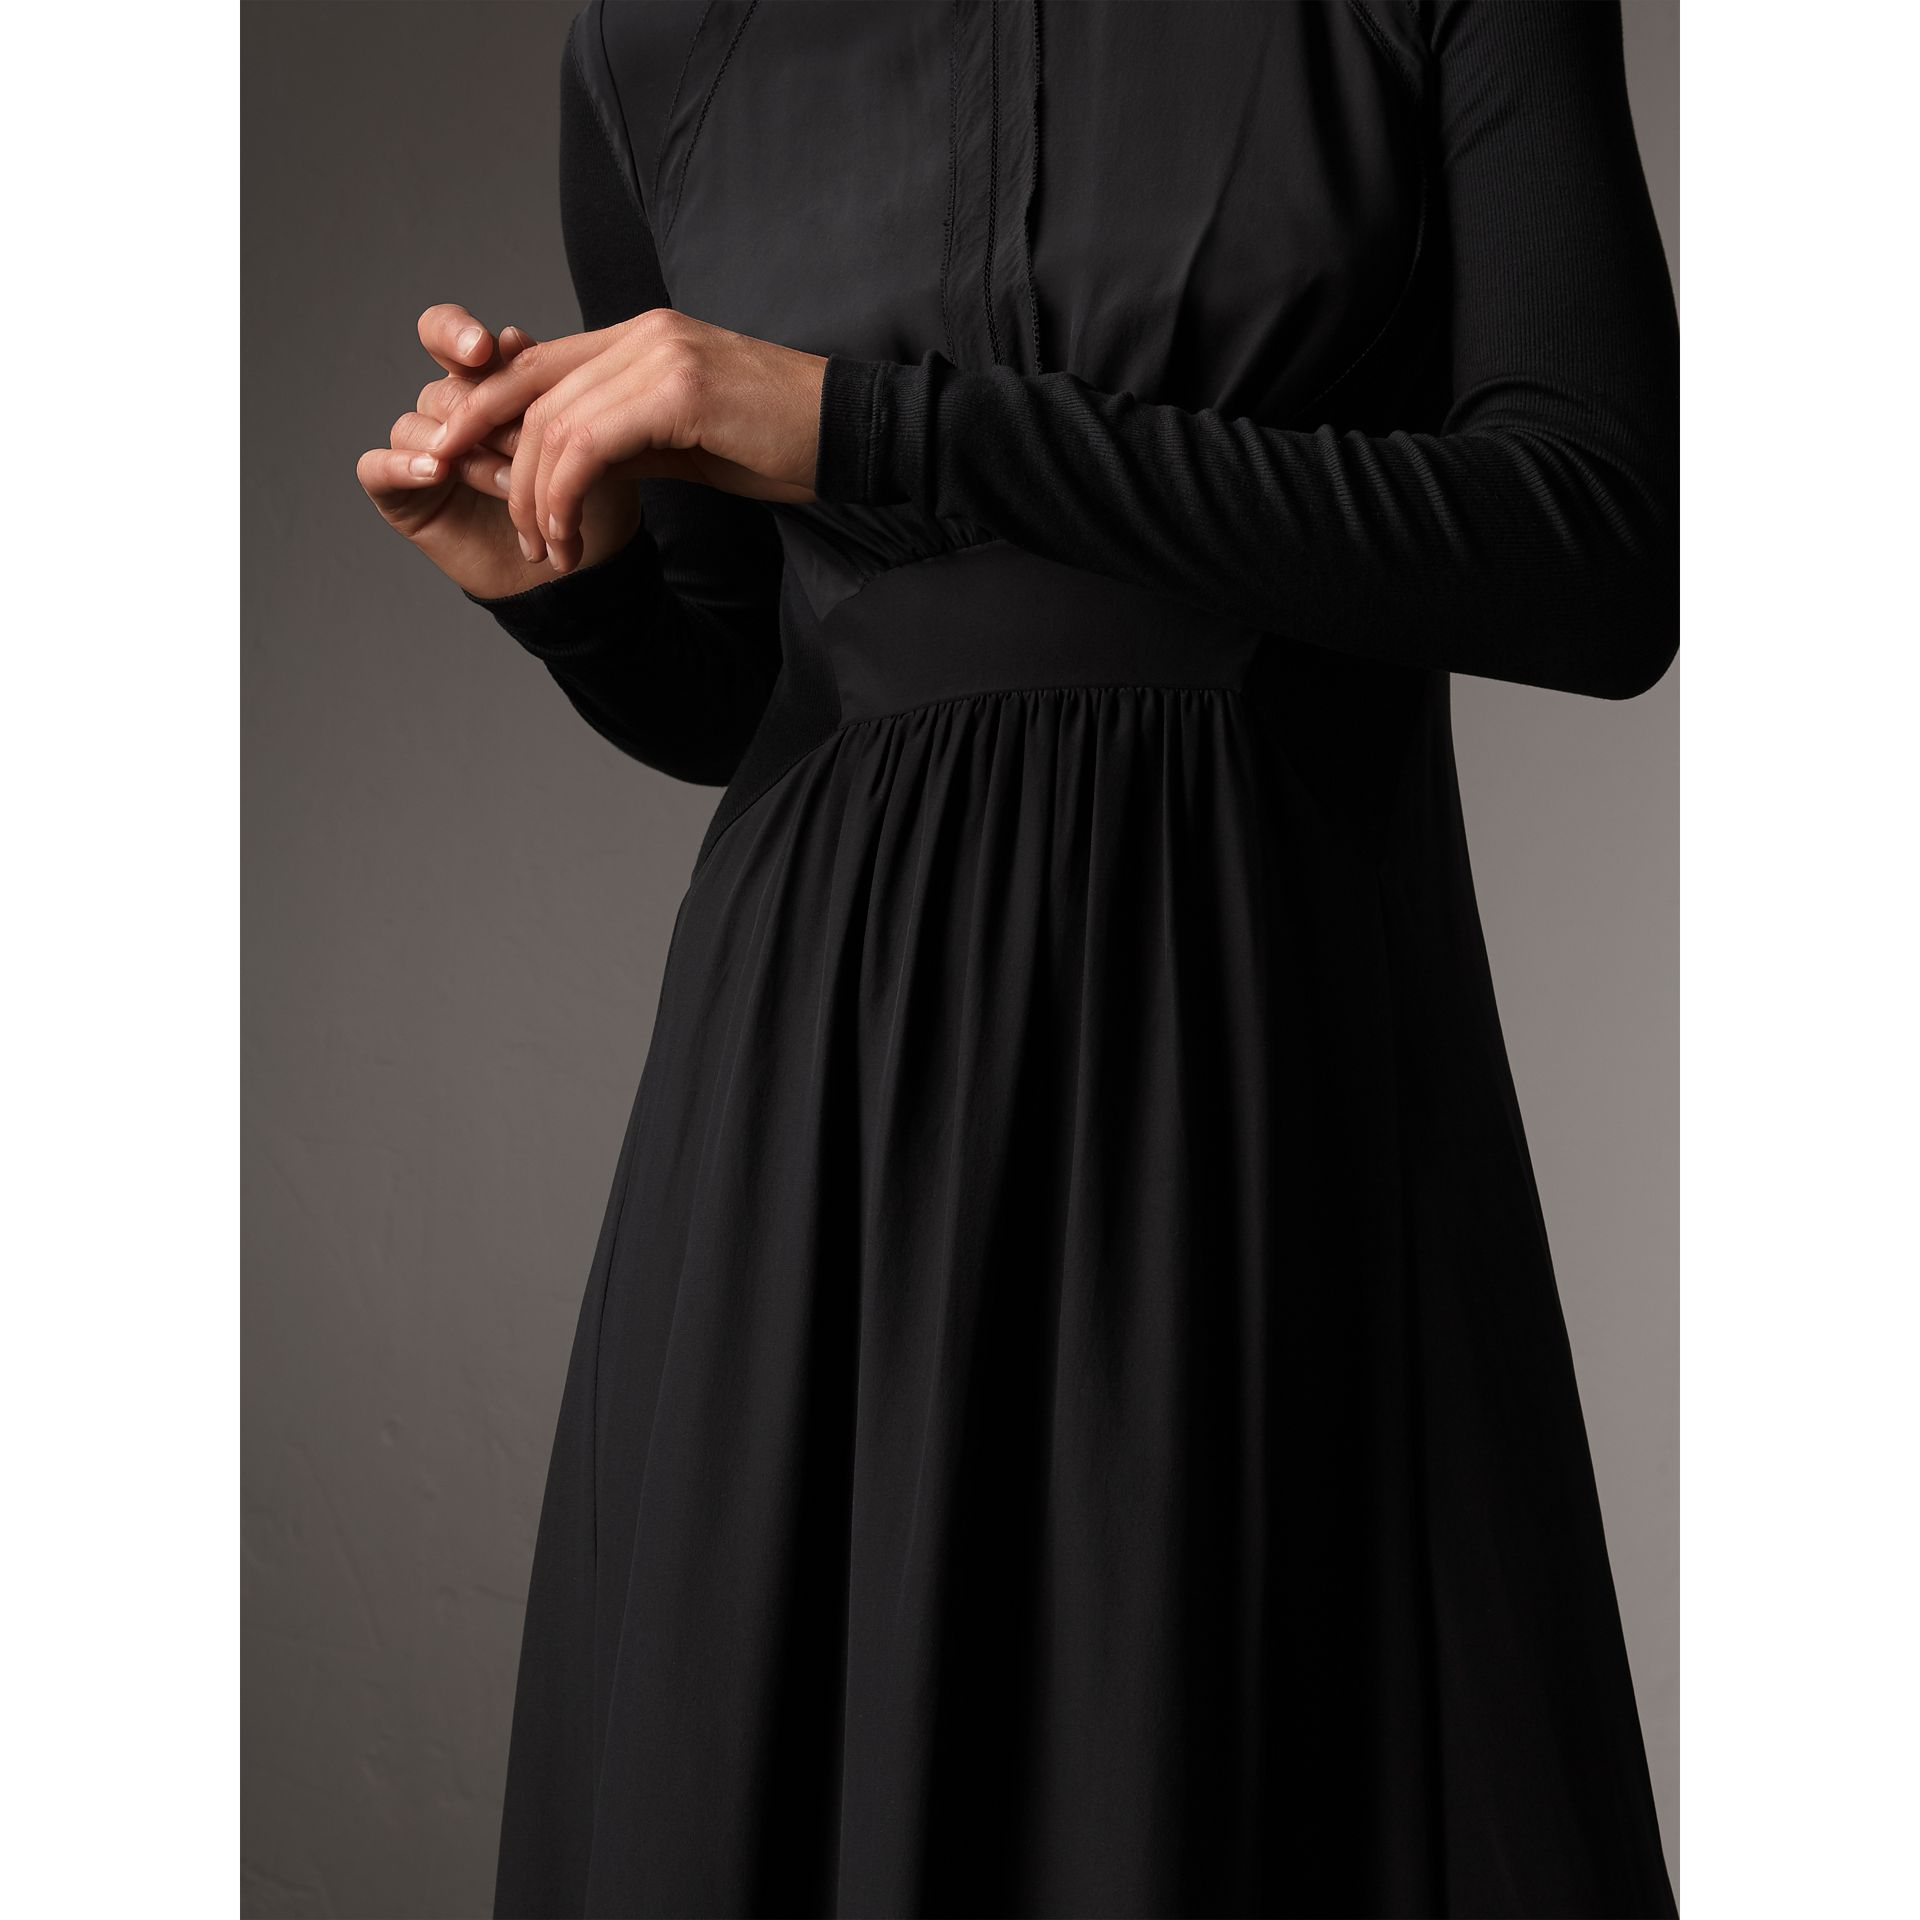 Silk Floor-length Gathered Dress in Black - Women | Burberry - gallery image 1